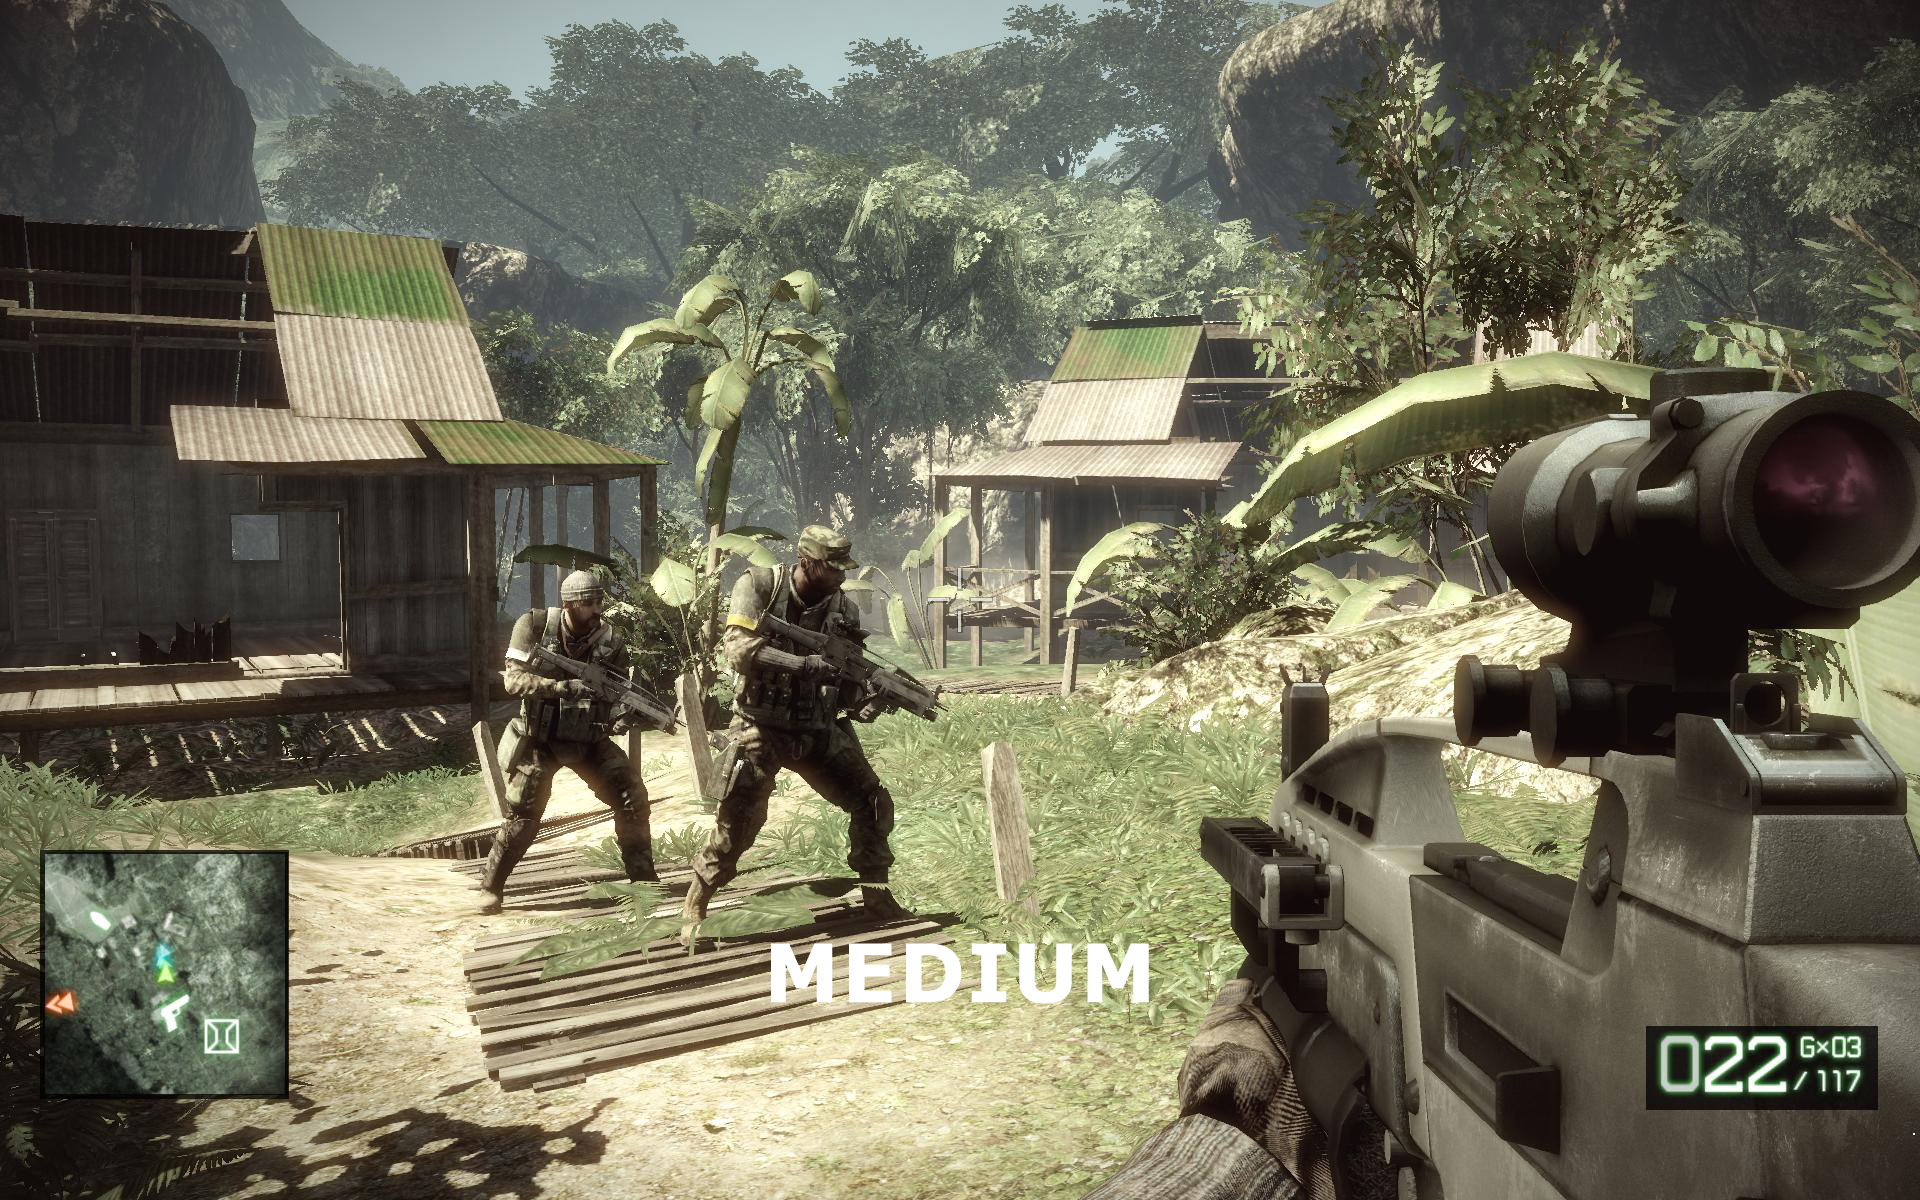 battlefield bad company 2 tweak guide webhallen com